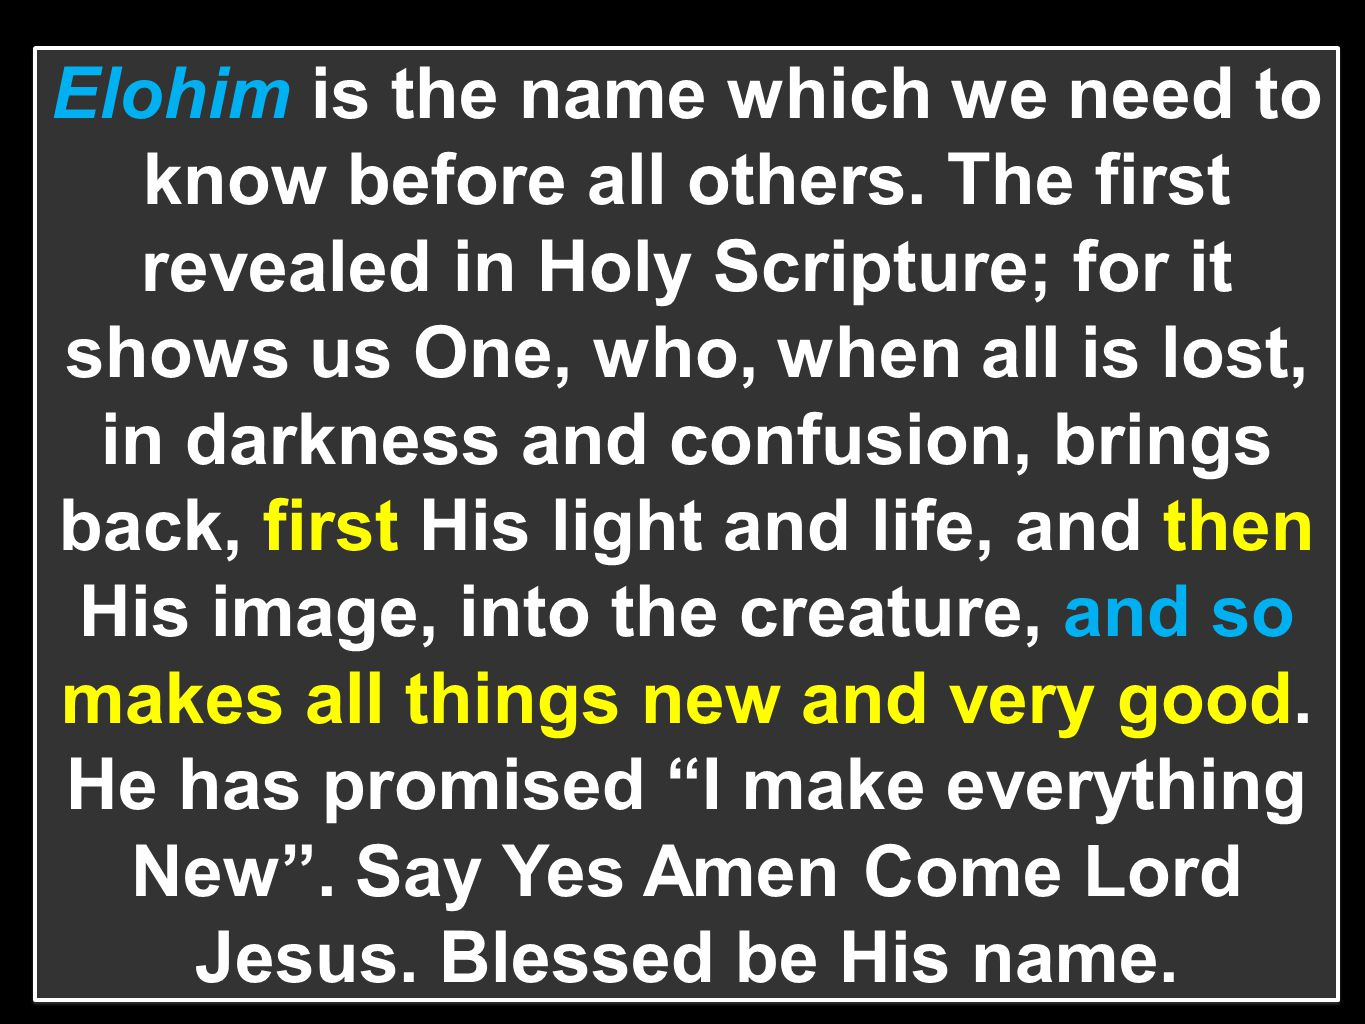 Elohim is the name which we need to know before all others